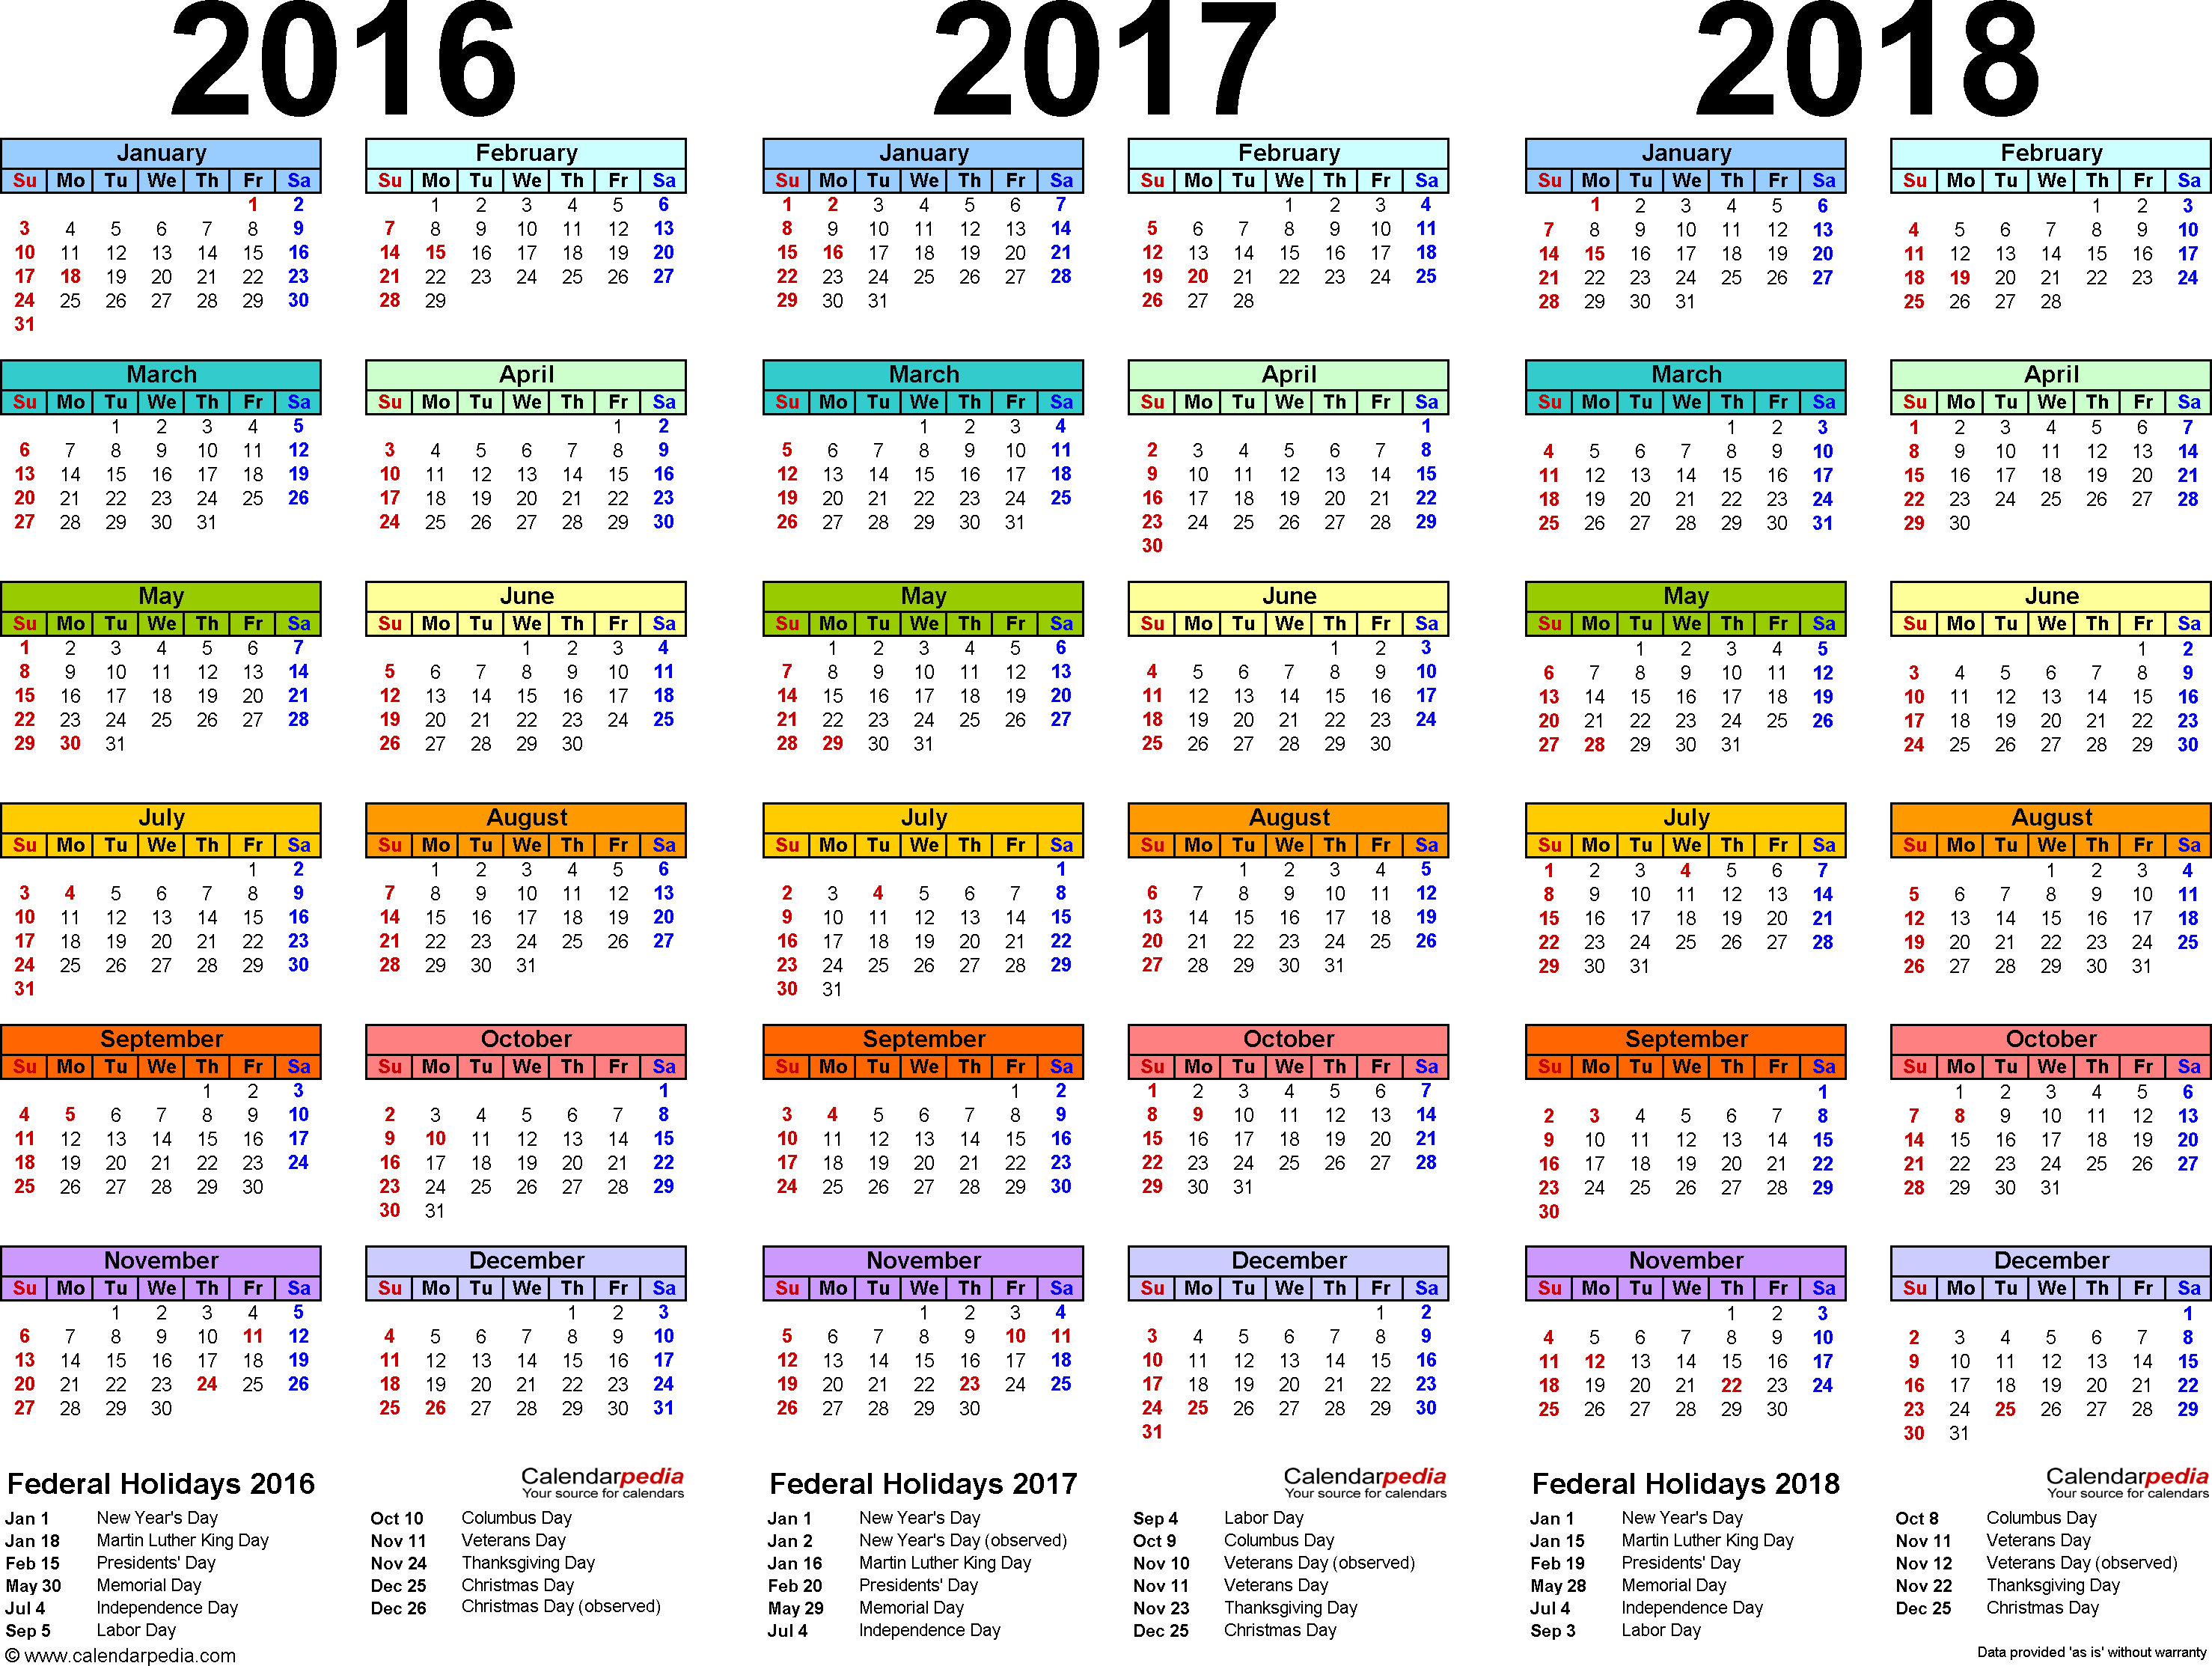 Template 1: Word template for three year calendar 2016/2017/2018 (landscape orientation, 1 page, in color)